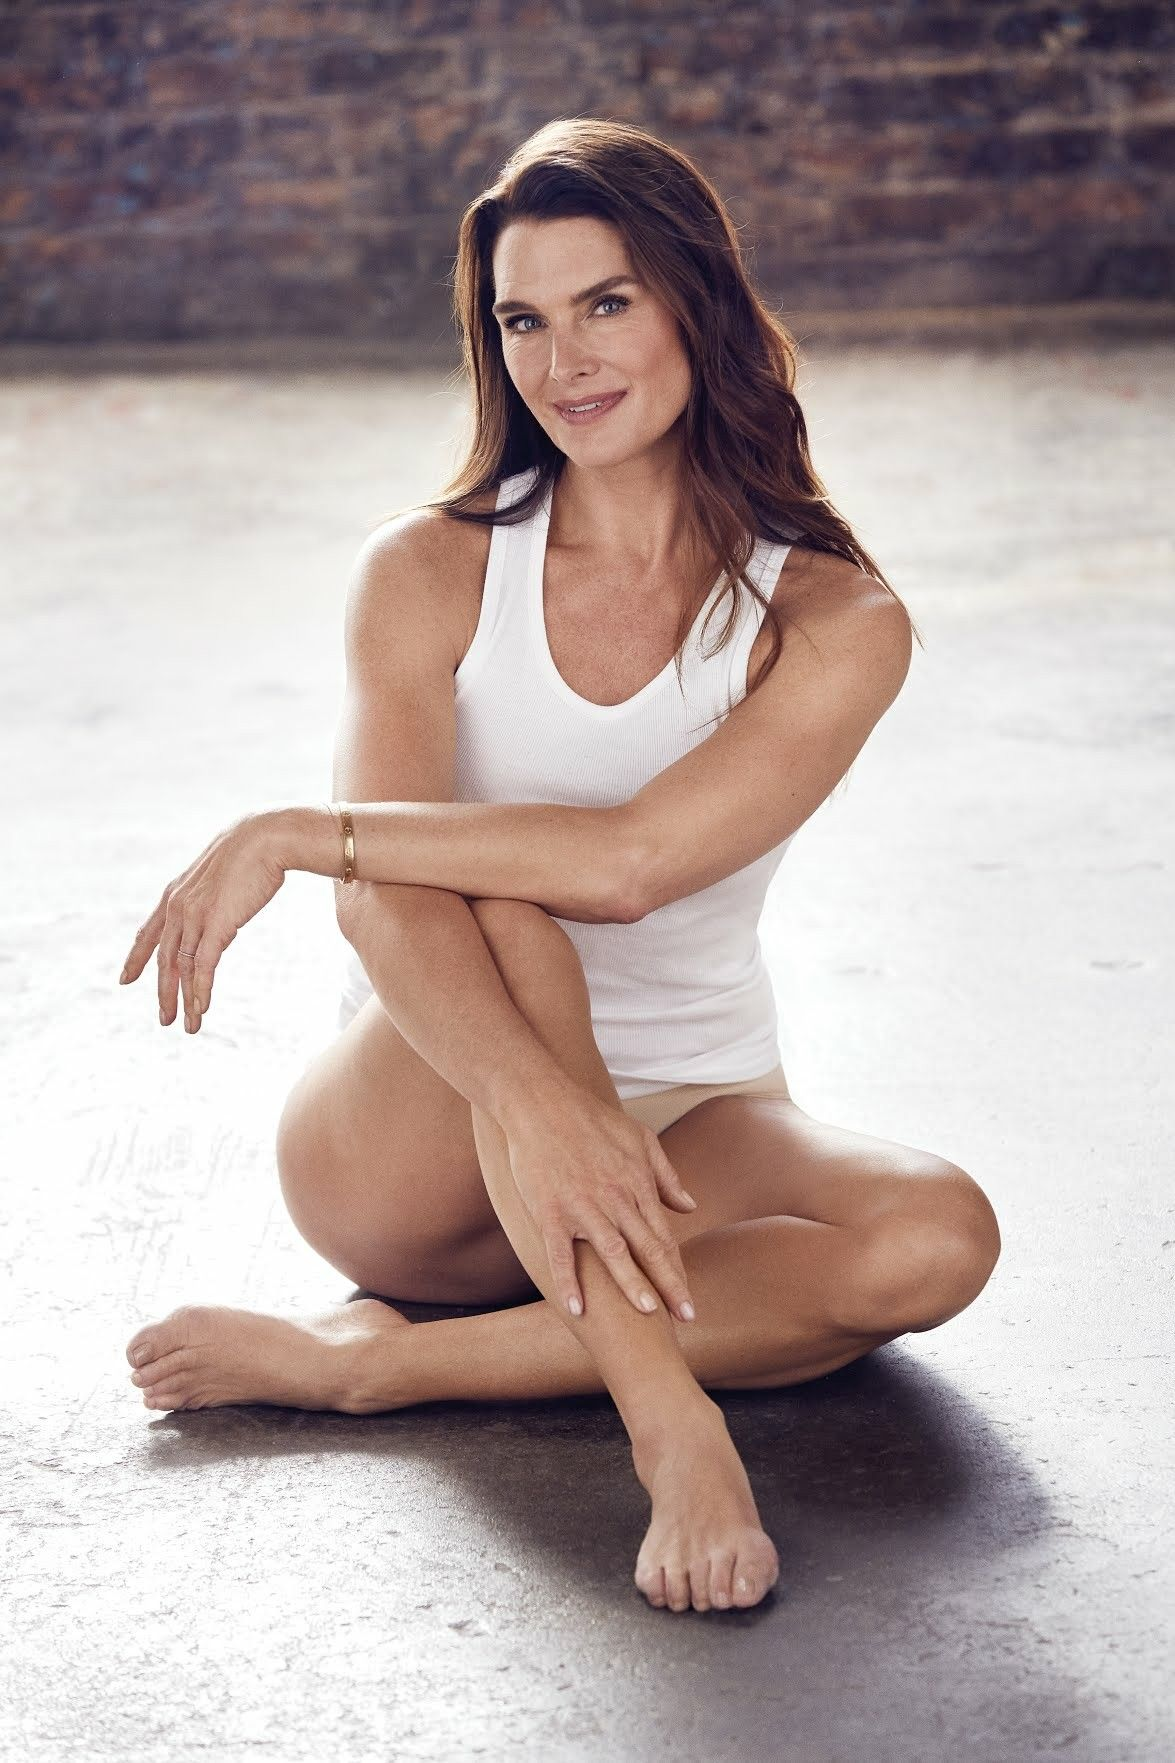 Feet Brooke Shields naked (56 foto and video), Ass, Cleavage, Feet, butt 2015